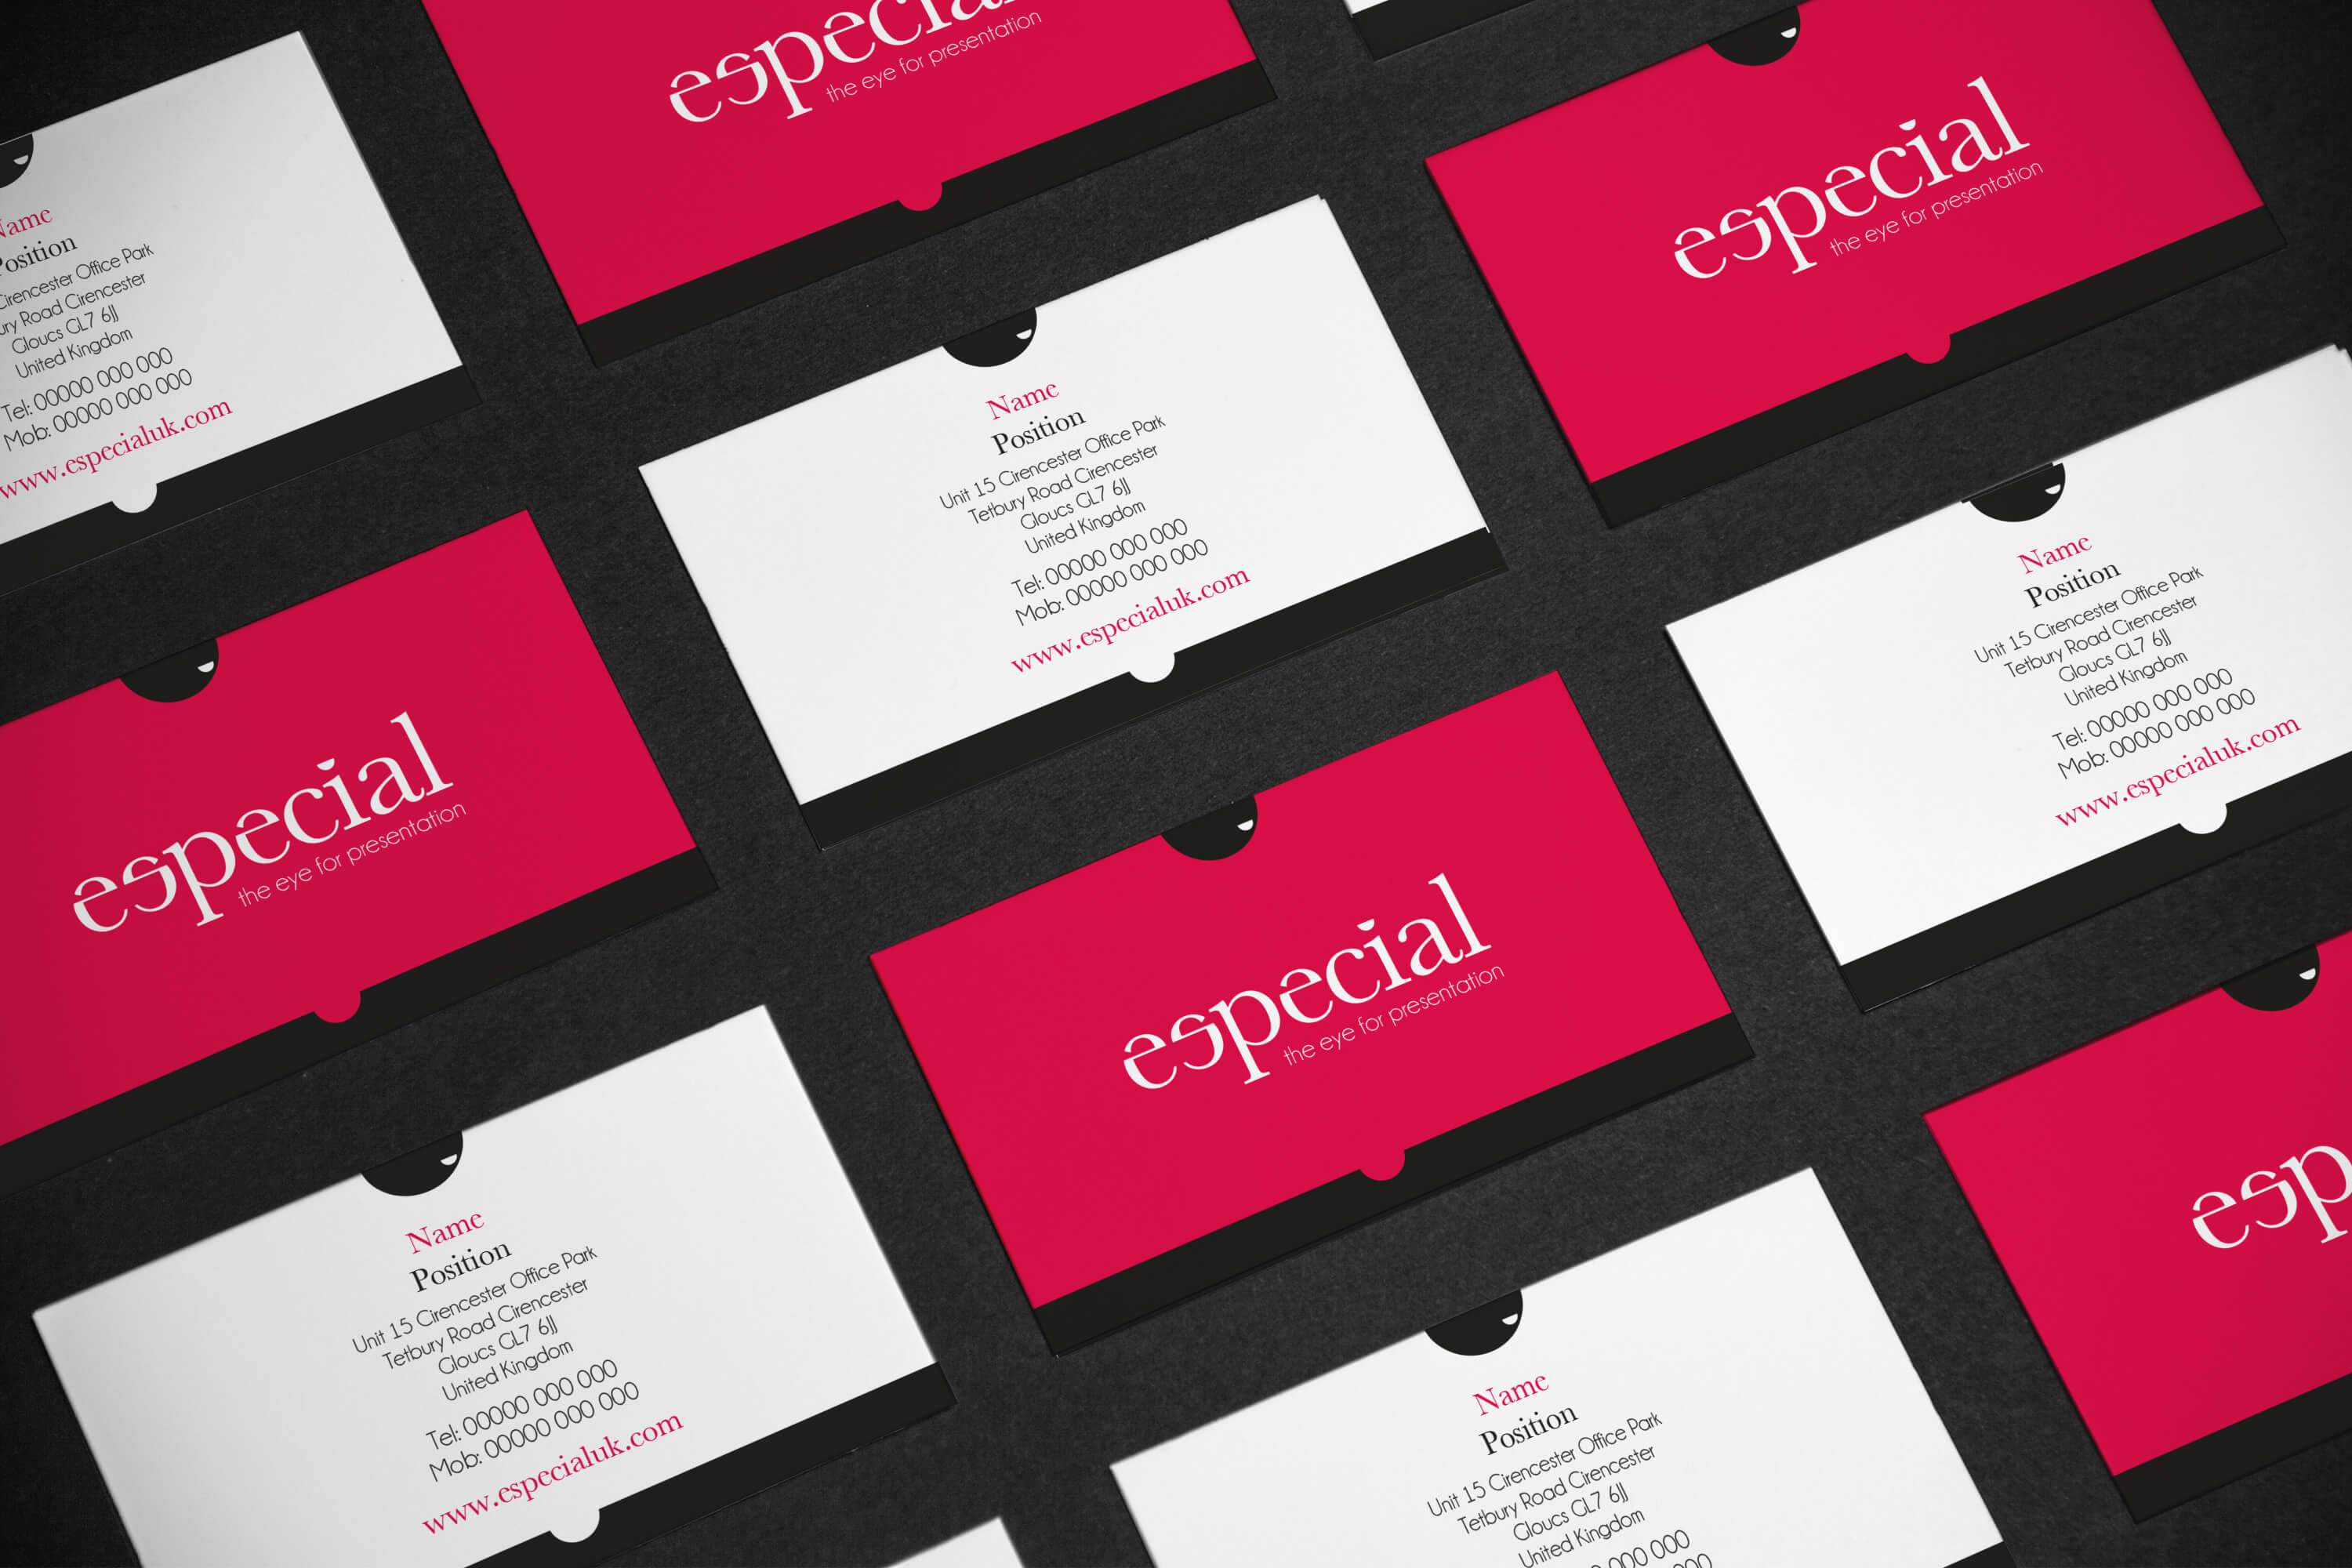 Multiple cards displaying the Especial business card design on front and back